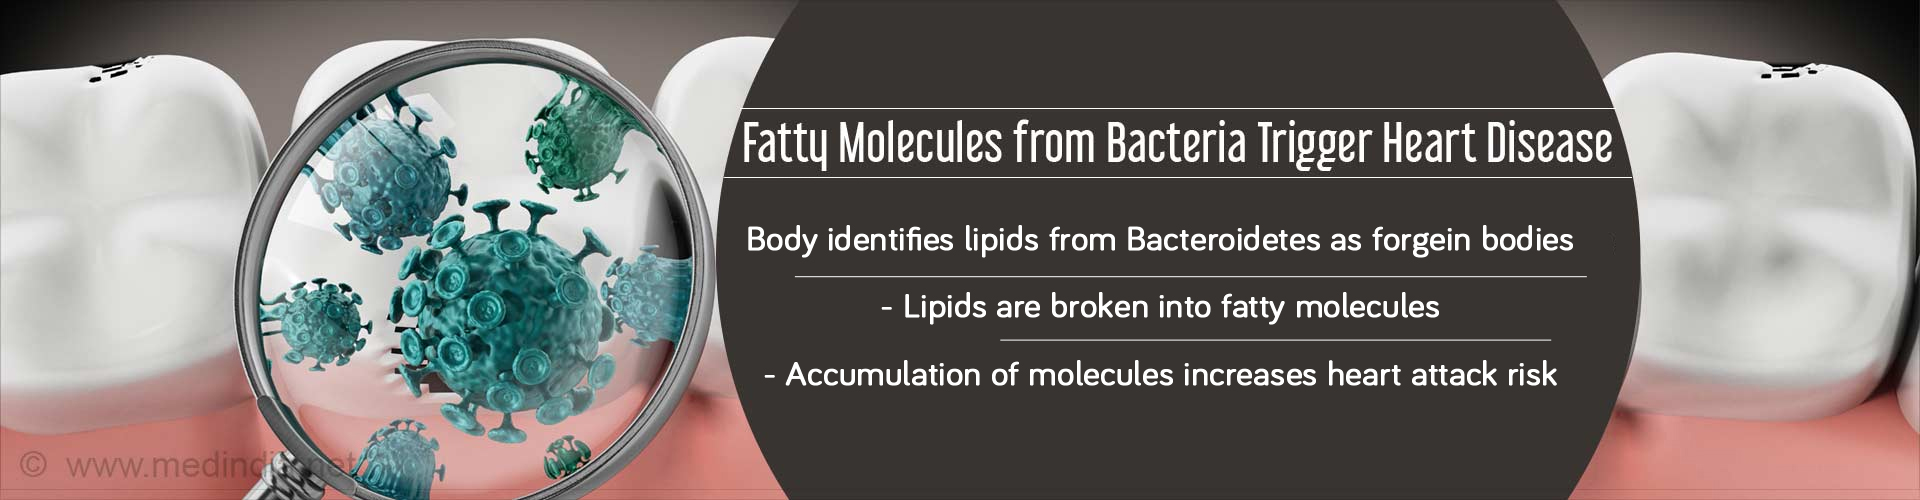 Fatty molecules from bacteria trigger heart disease